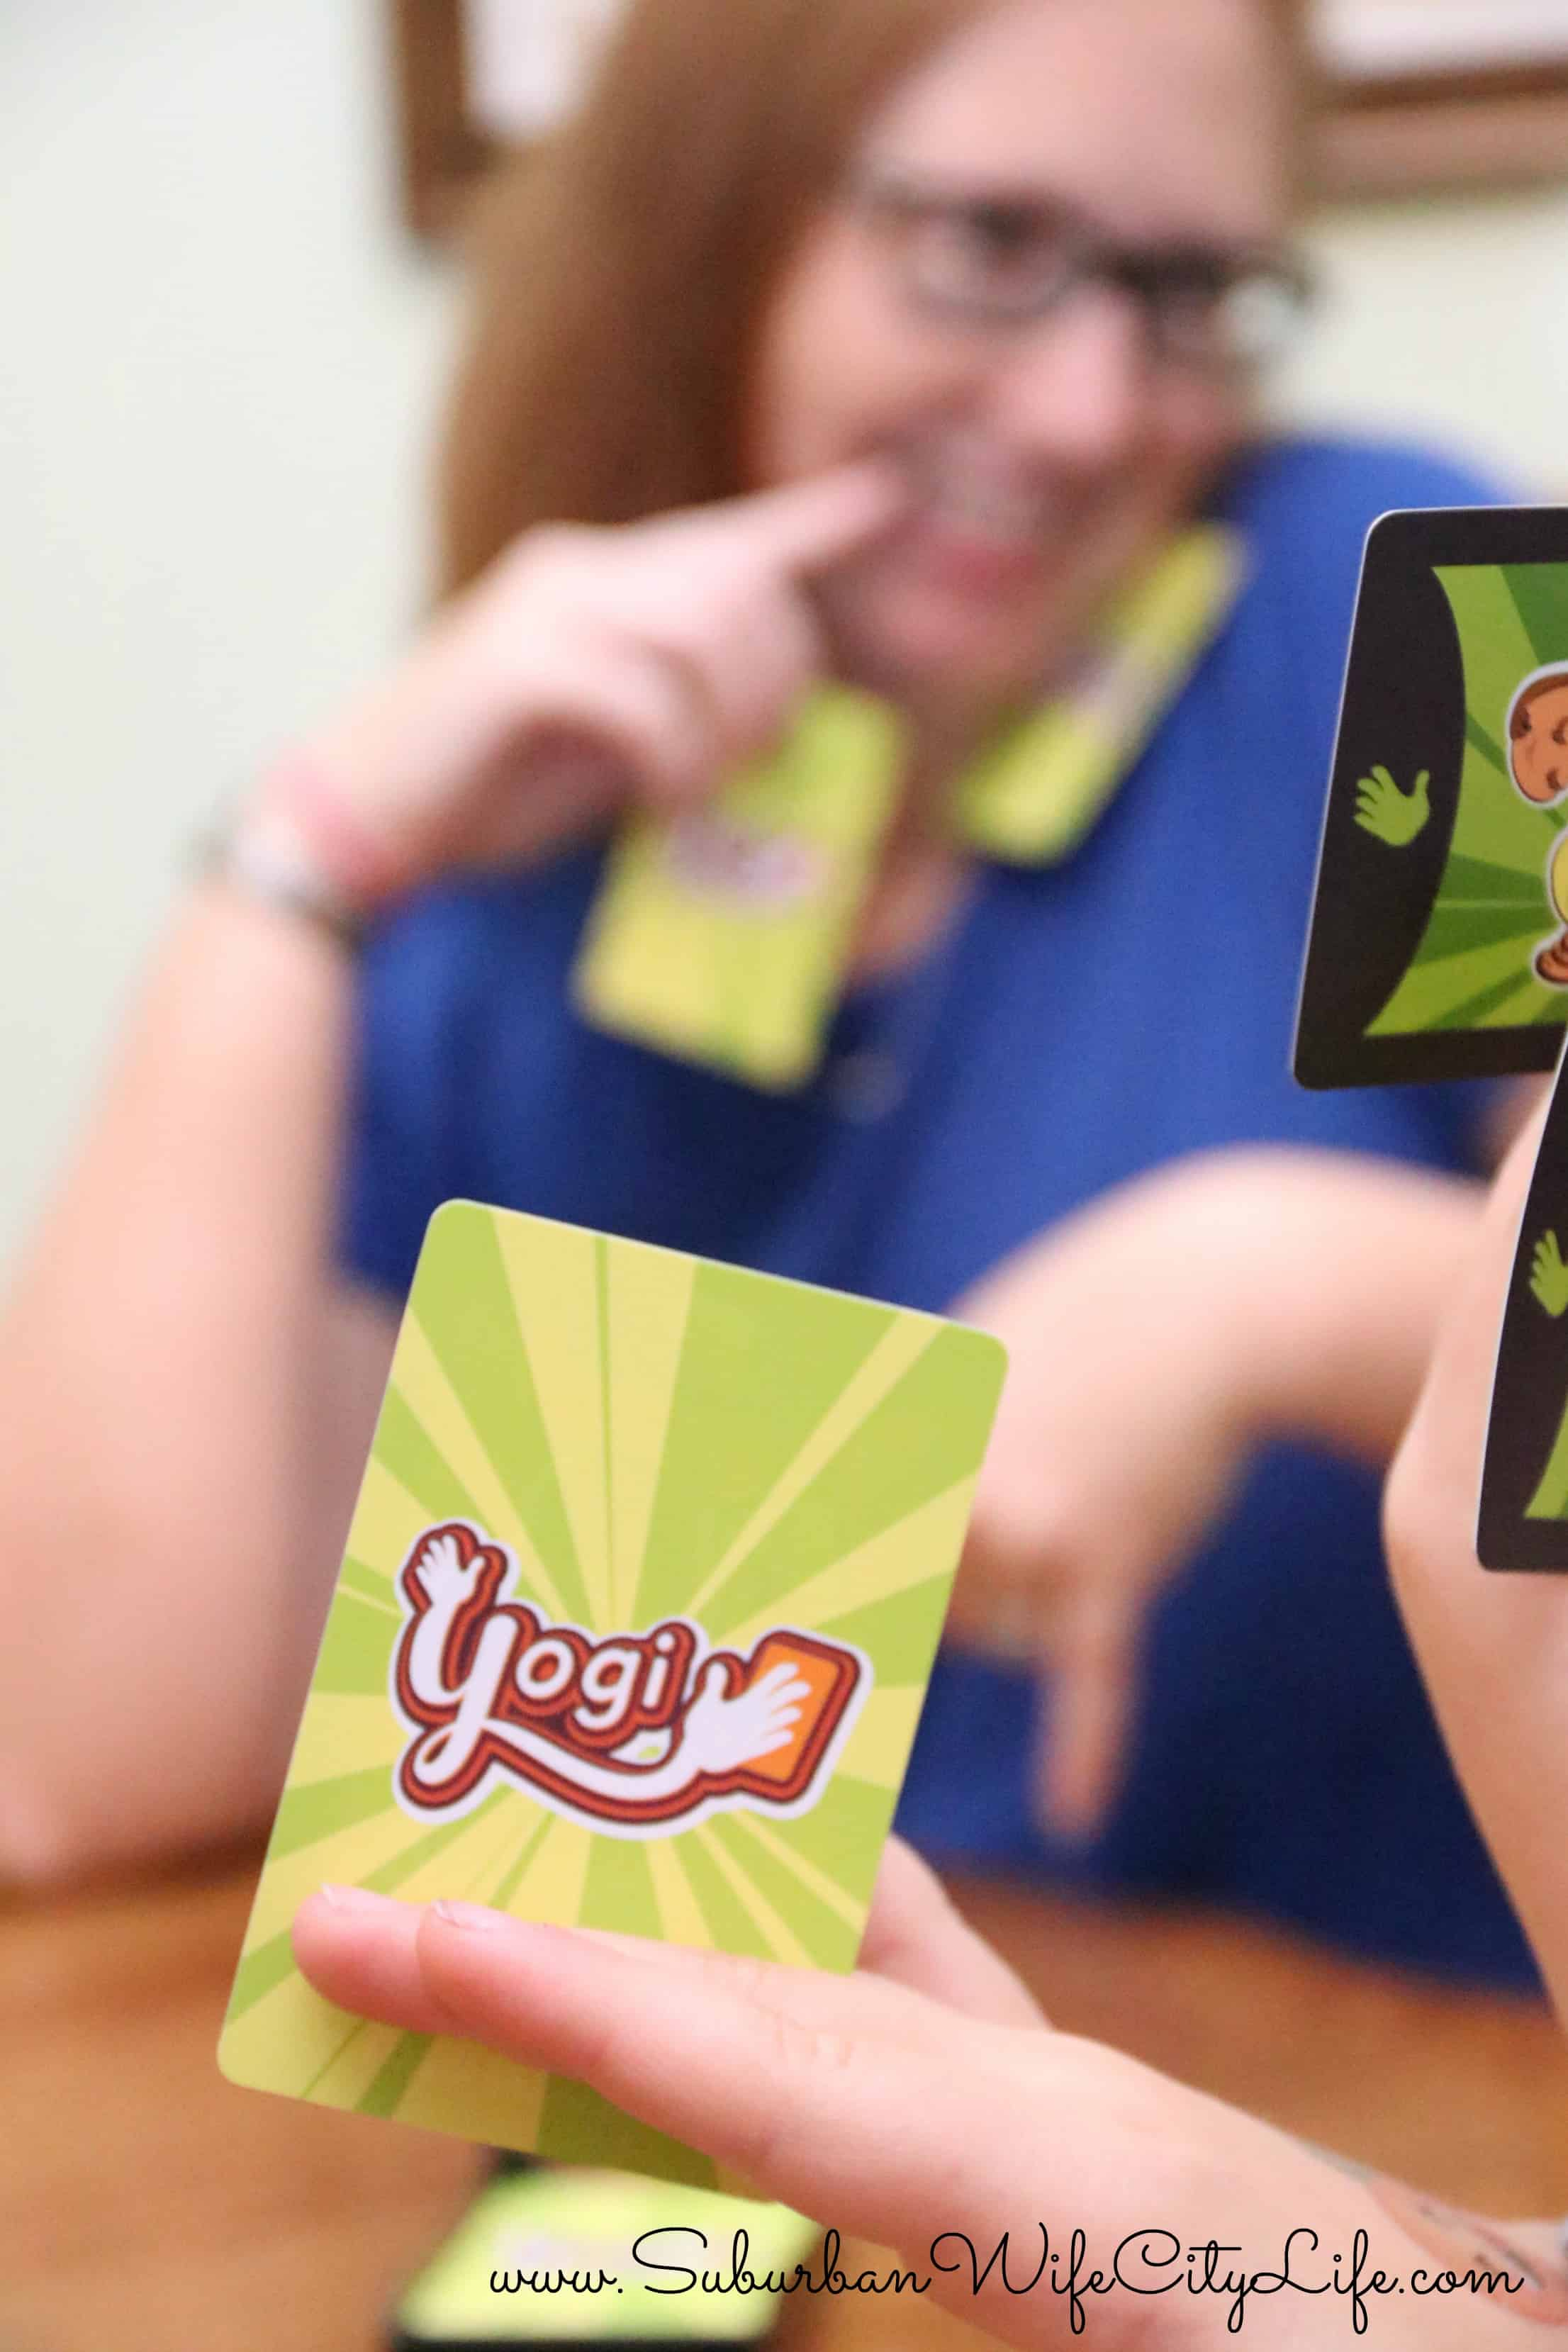 Gigamic Games keep your mind and body active